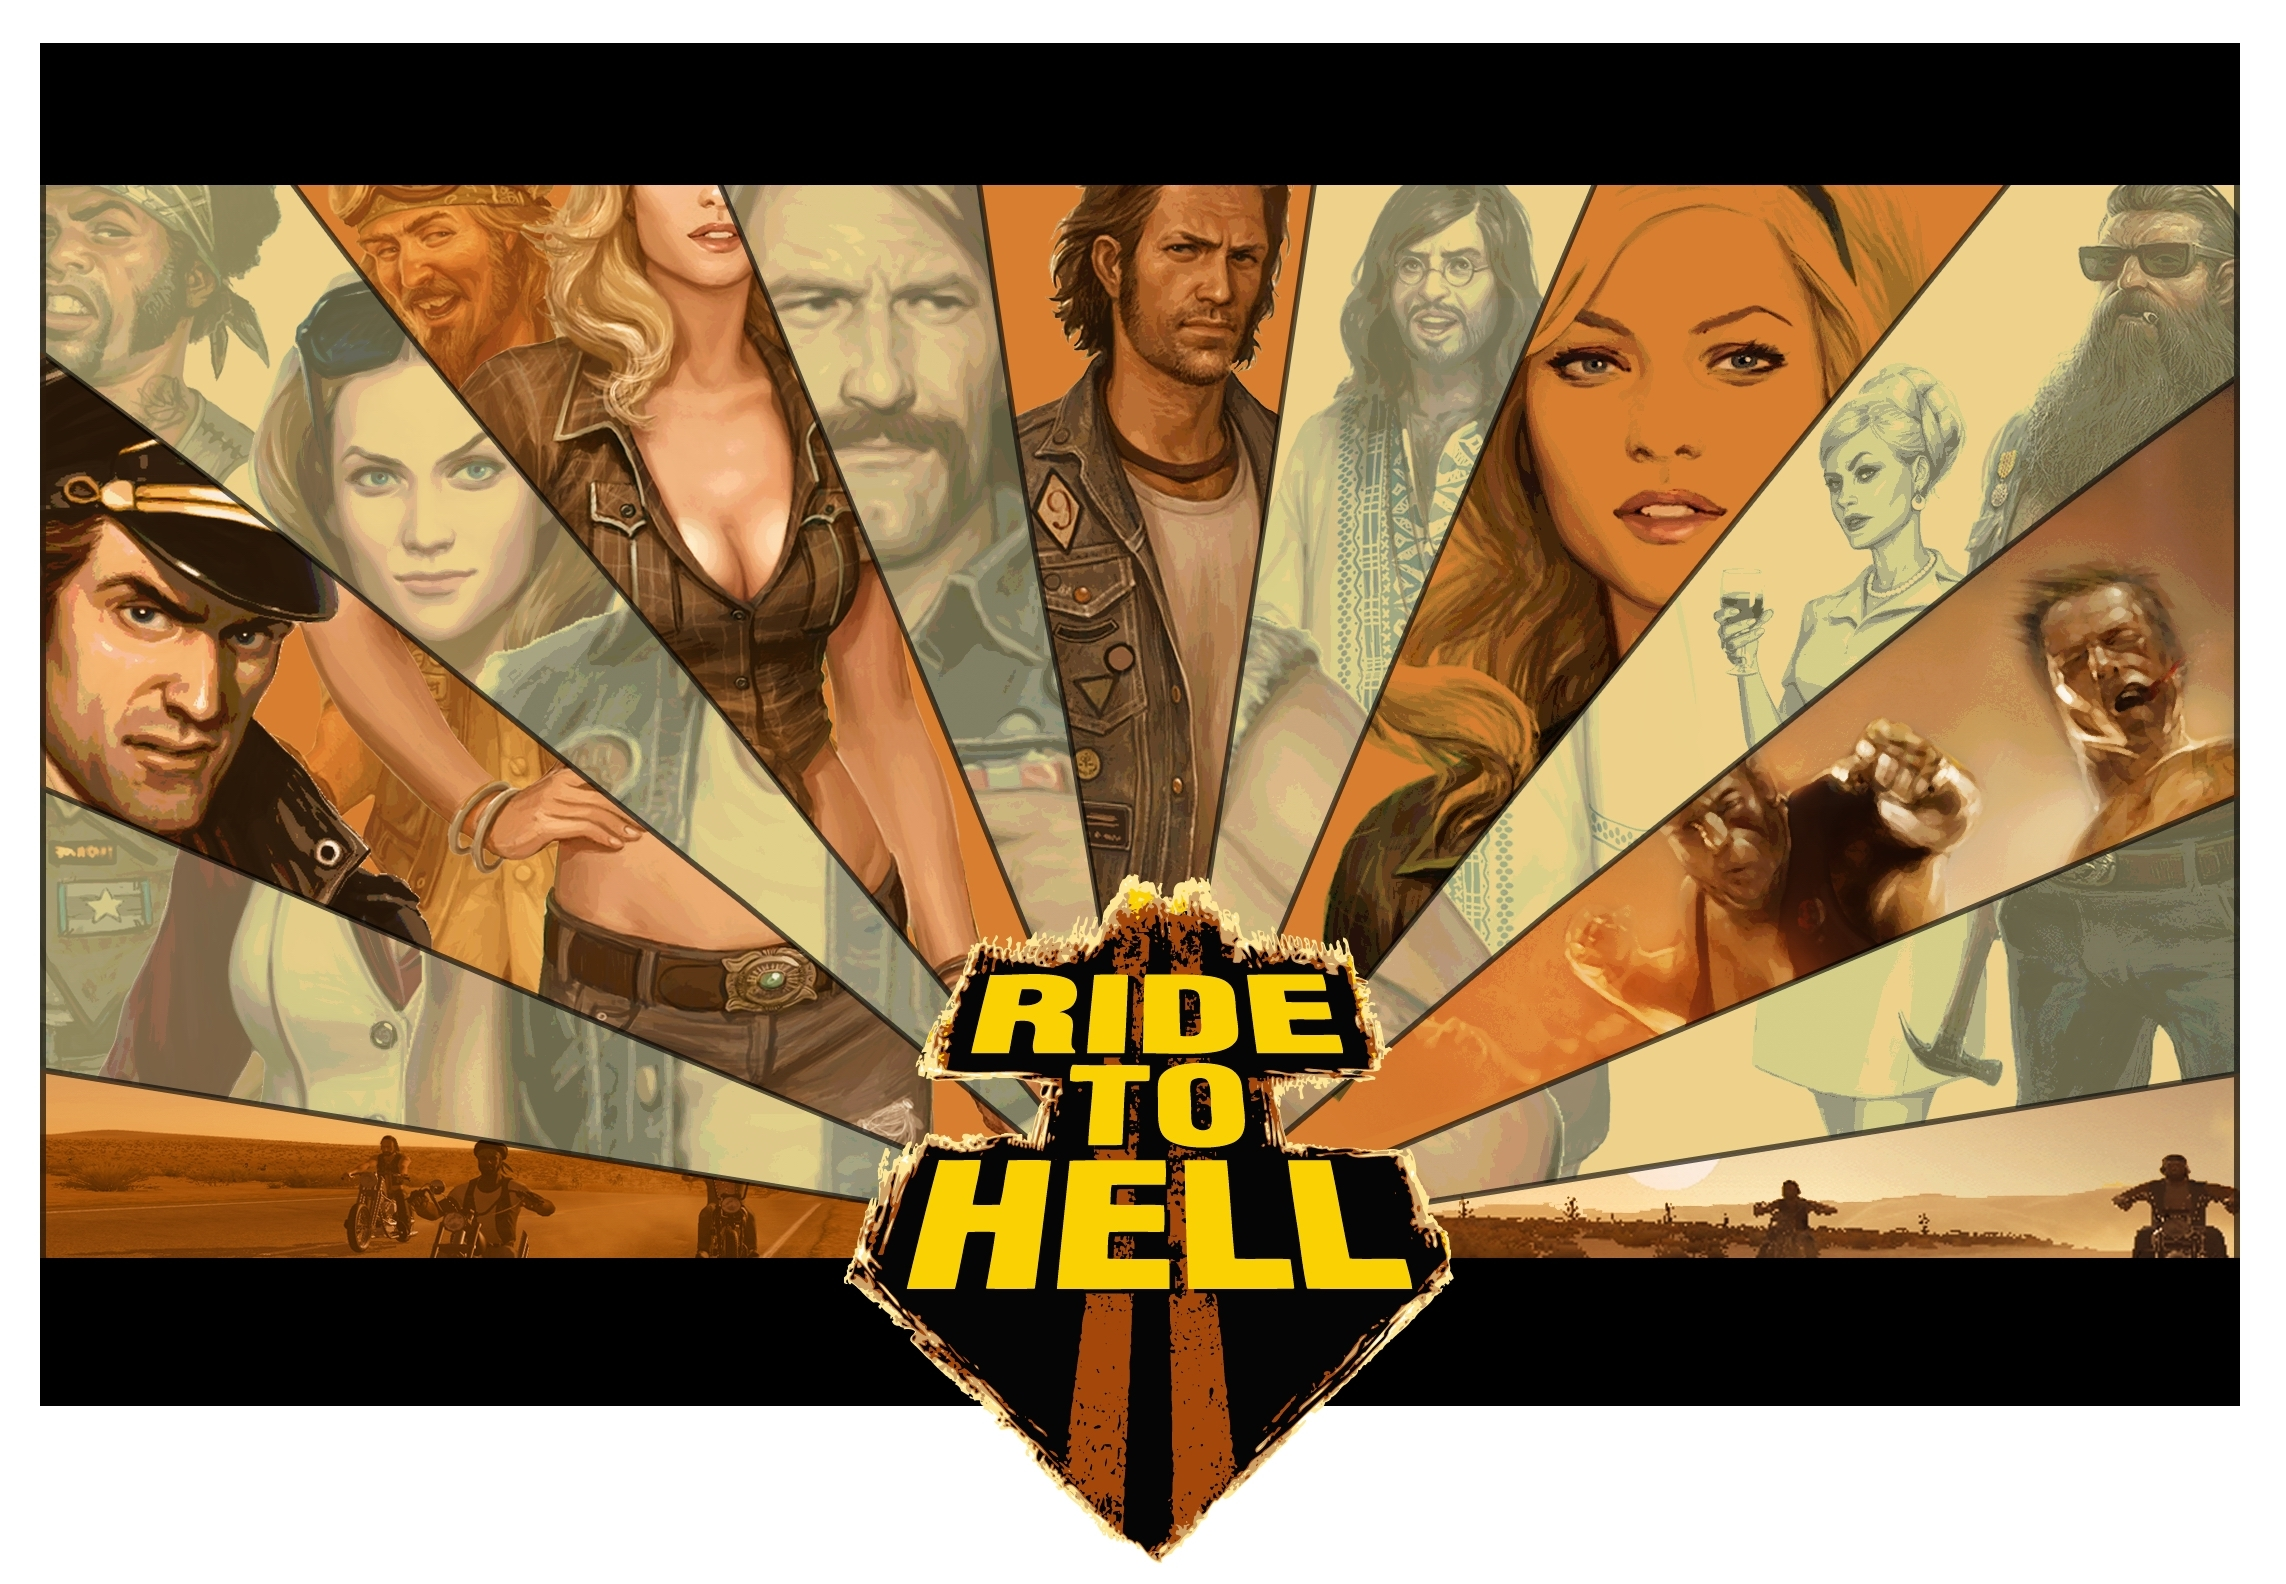 ride to hell key HD Wallpaper